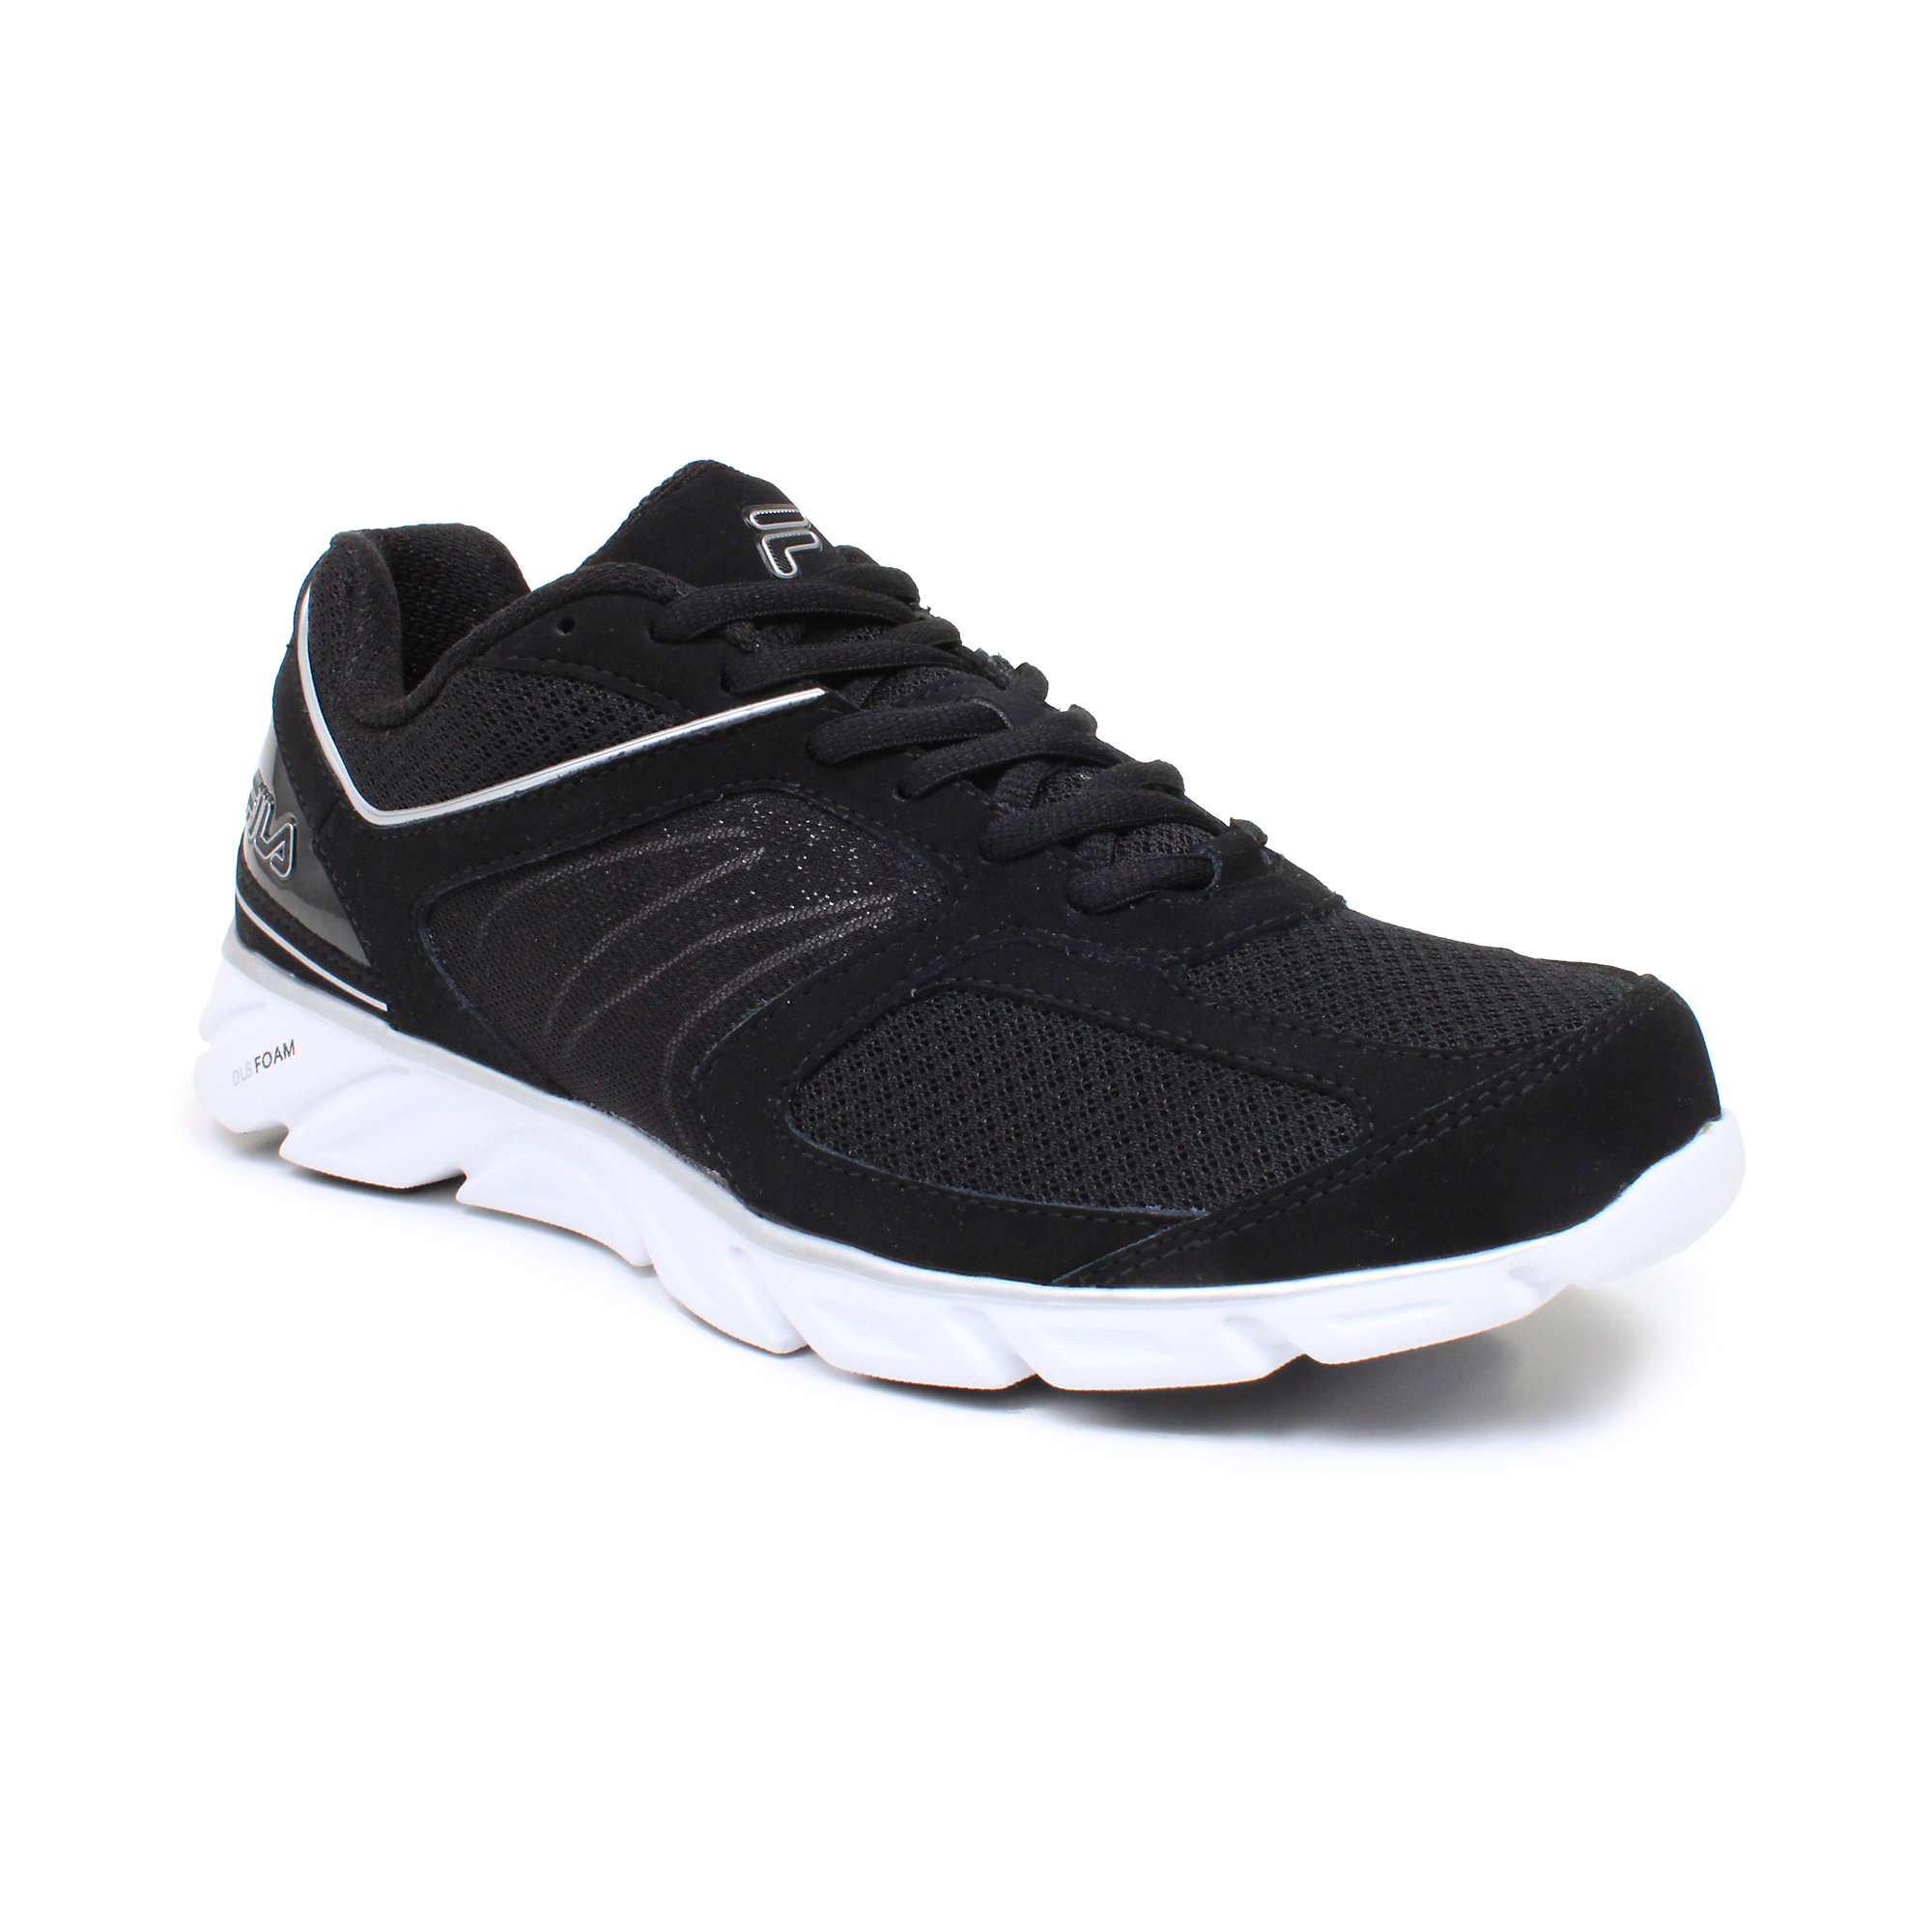 men's ultimate lite in null